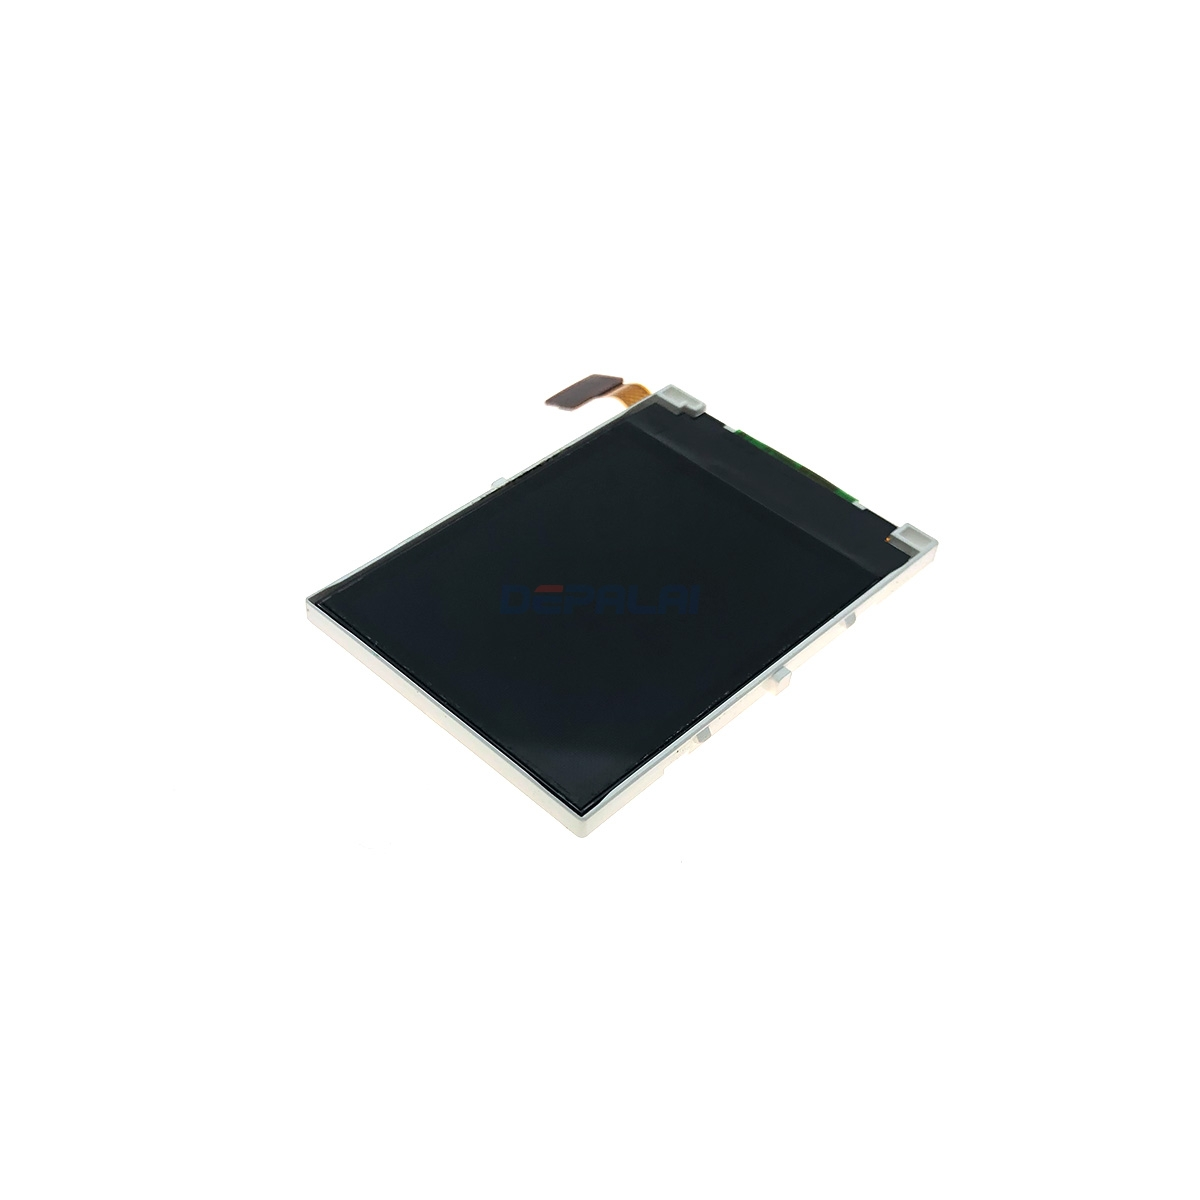 LCD Display Screen Replacement For <font><b>nokia</b></font> 1681 1682c 1680 2600C 2630 2760 <font><b>1650</b></font> LCD image